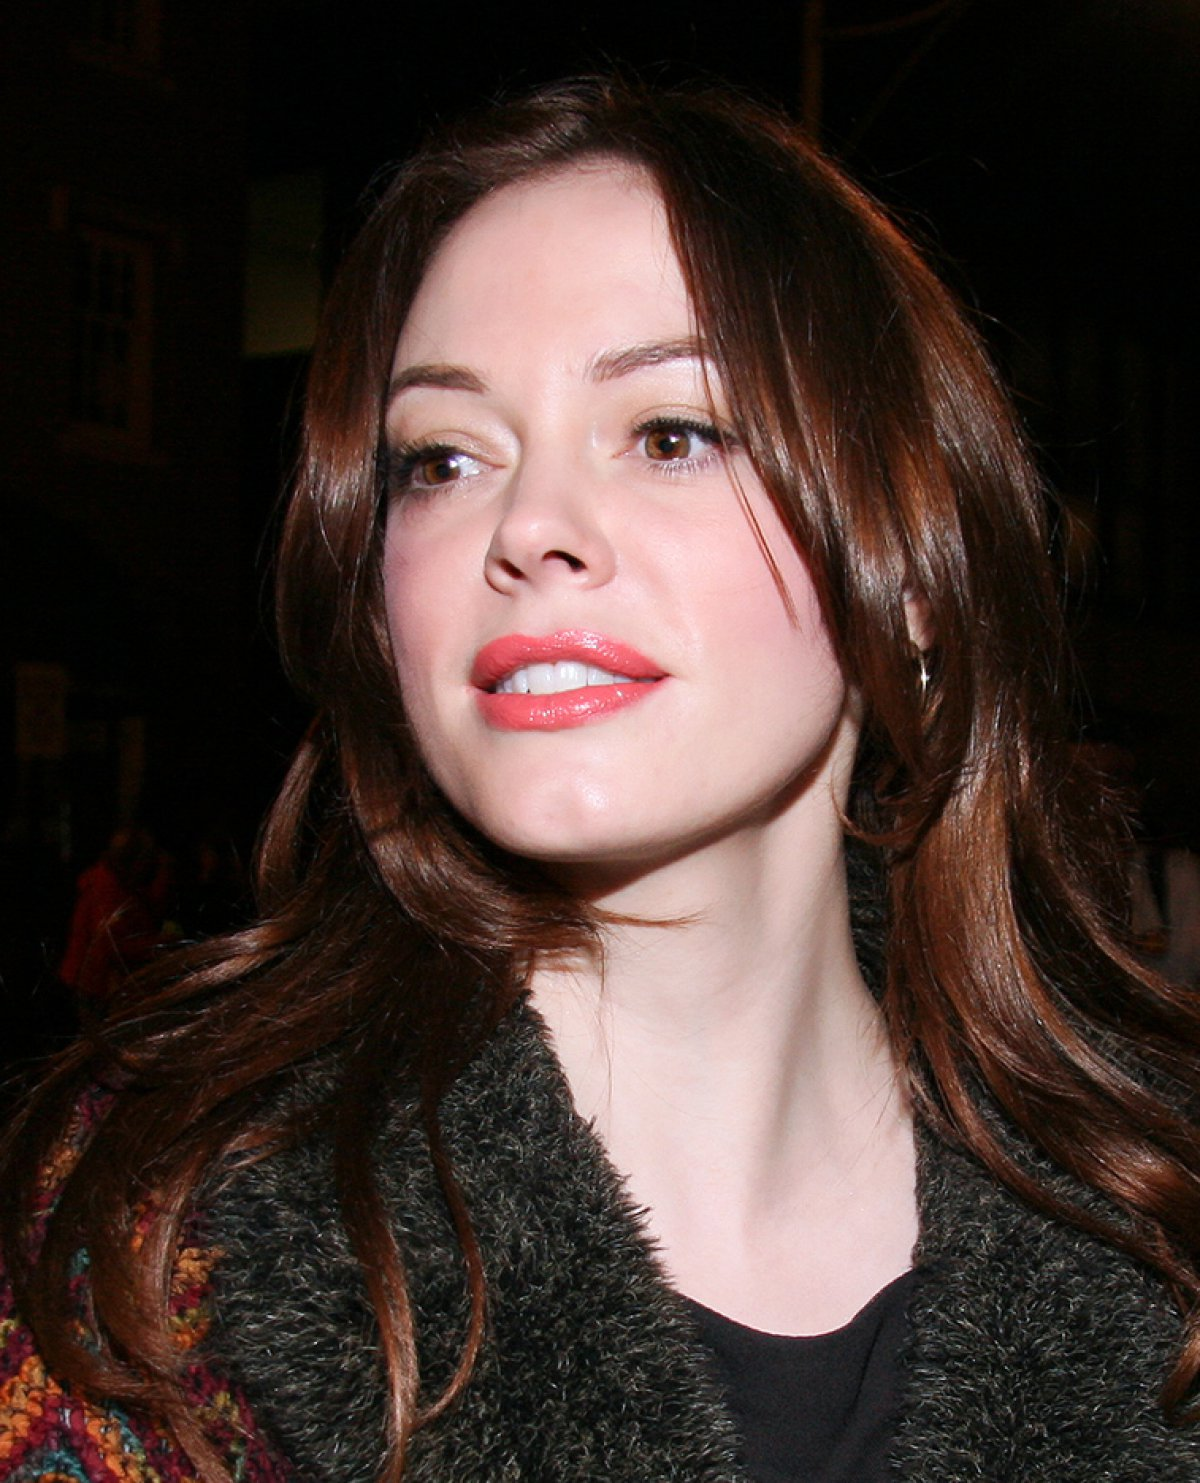 Rose McGowan to play Ann-Margret in Elvis movie - Reality TV World